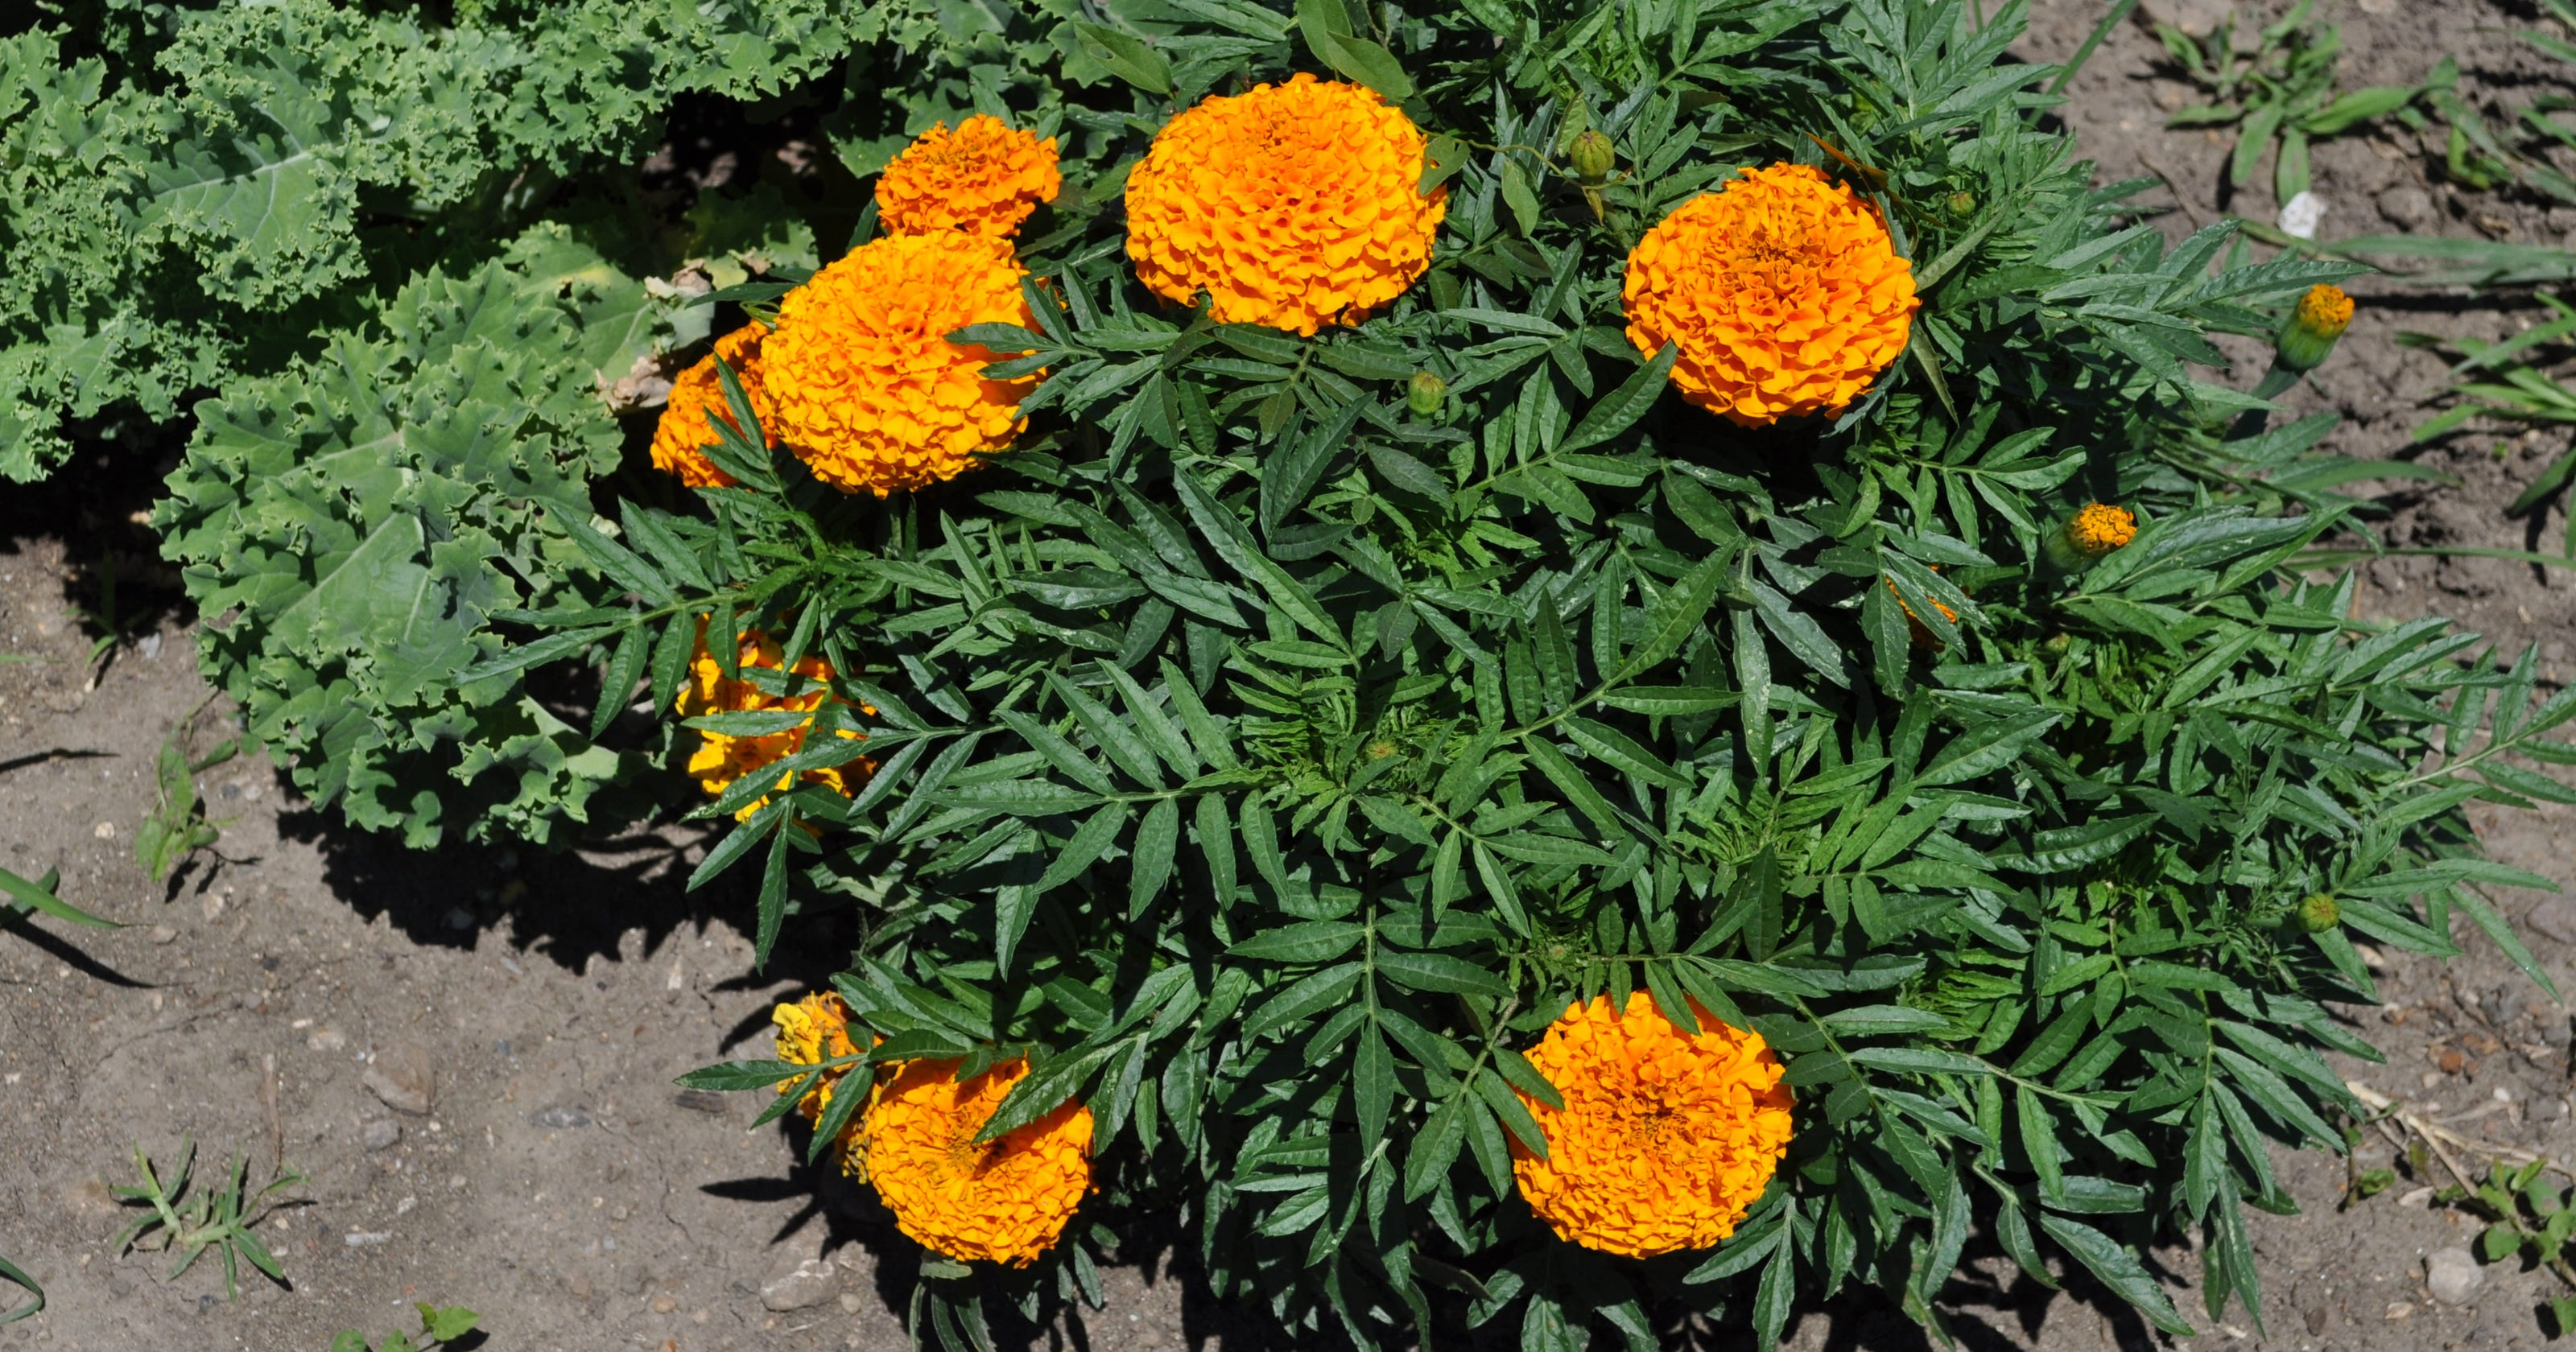 Dr Dirt Marigolds Are Pretty But Won T Repel Insects